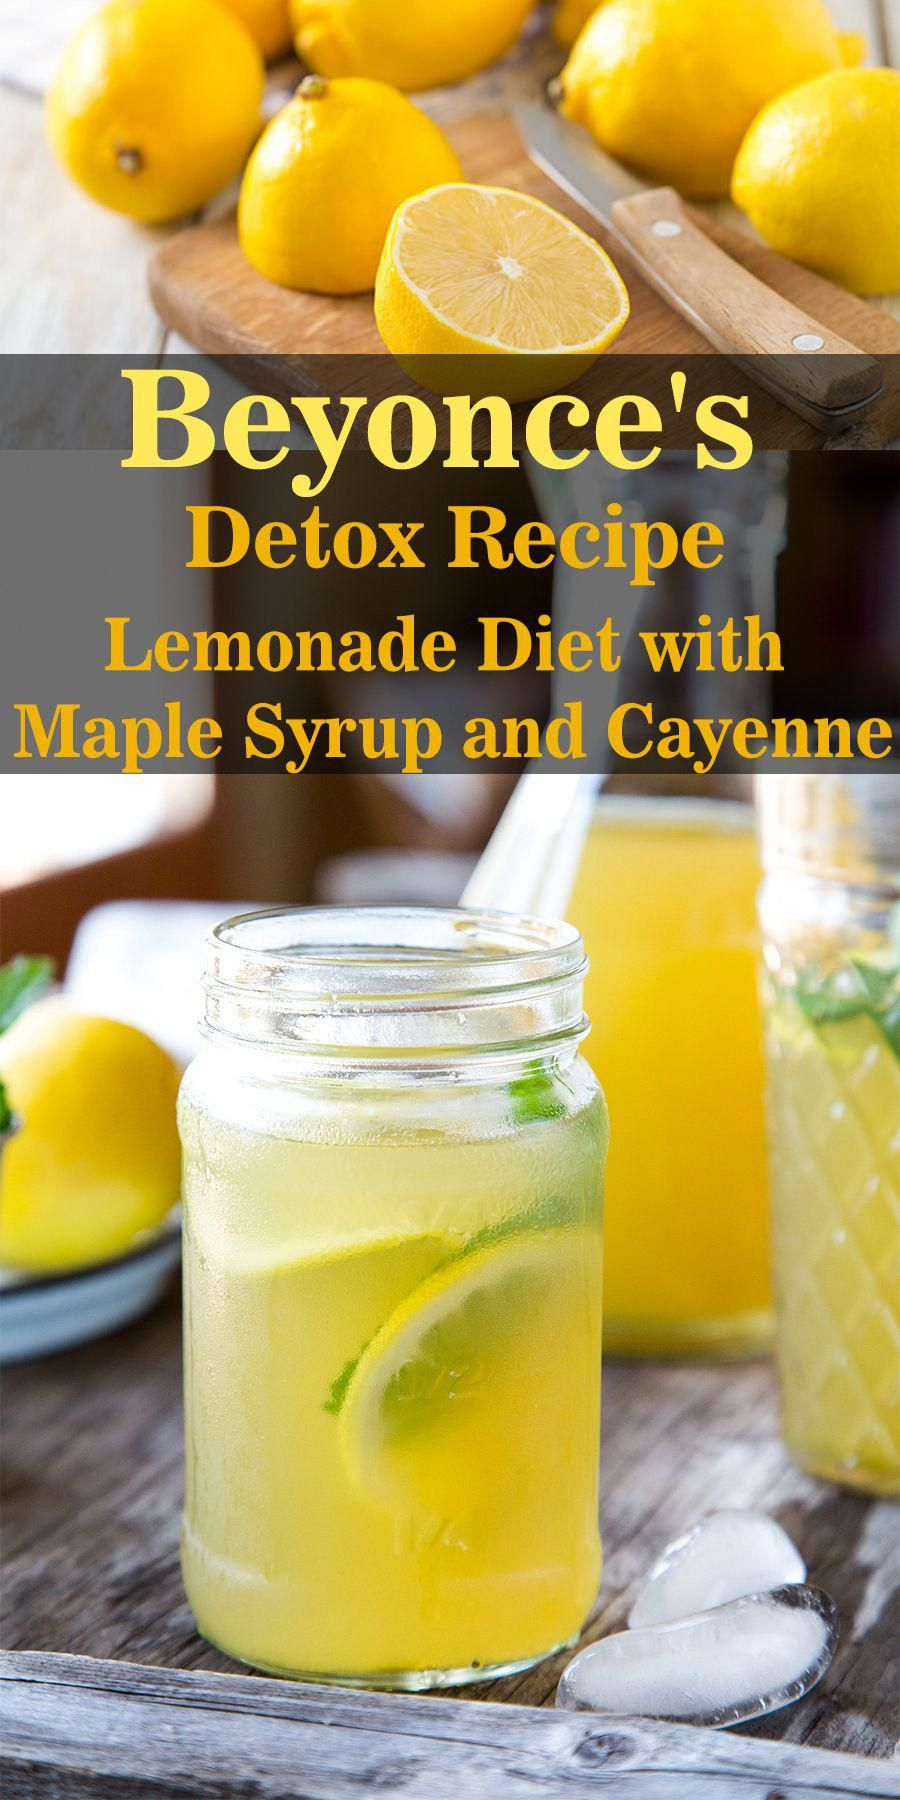 Lemonade Diet With Maple Syrup And Cayenne Detoxdrinksdigestion